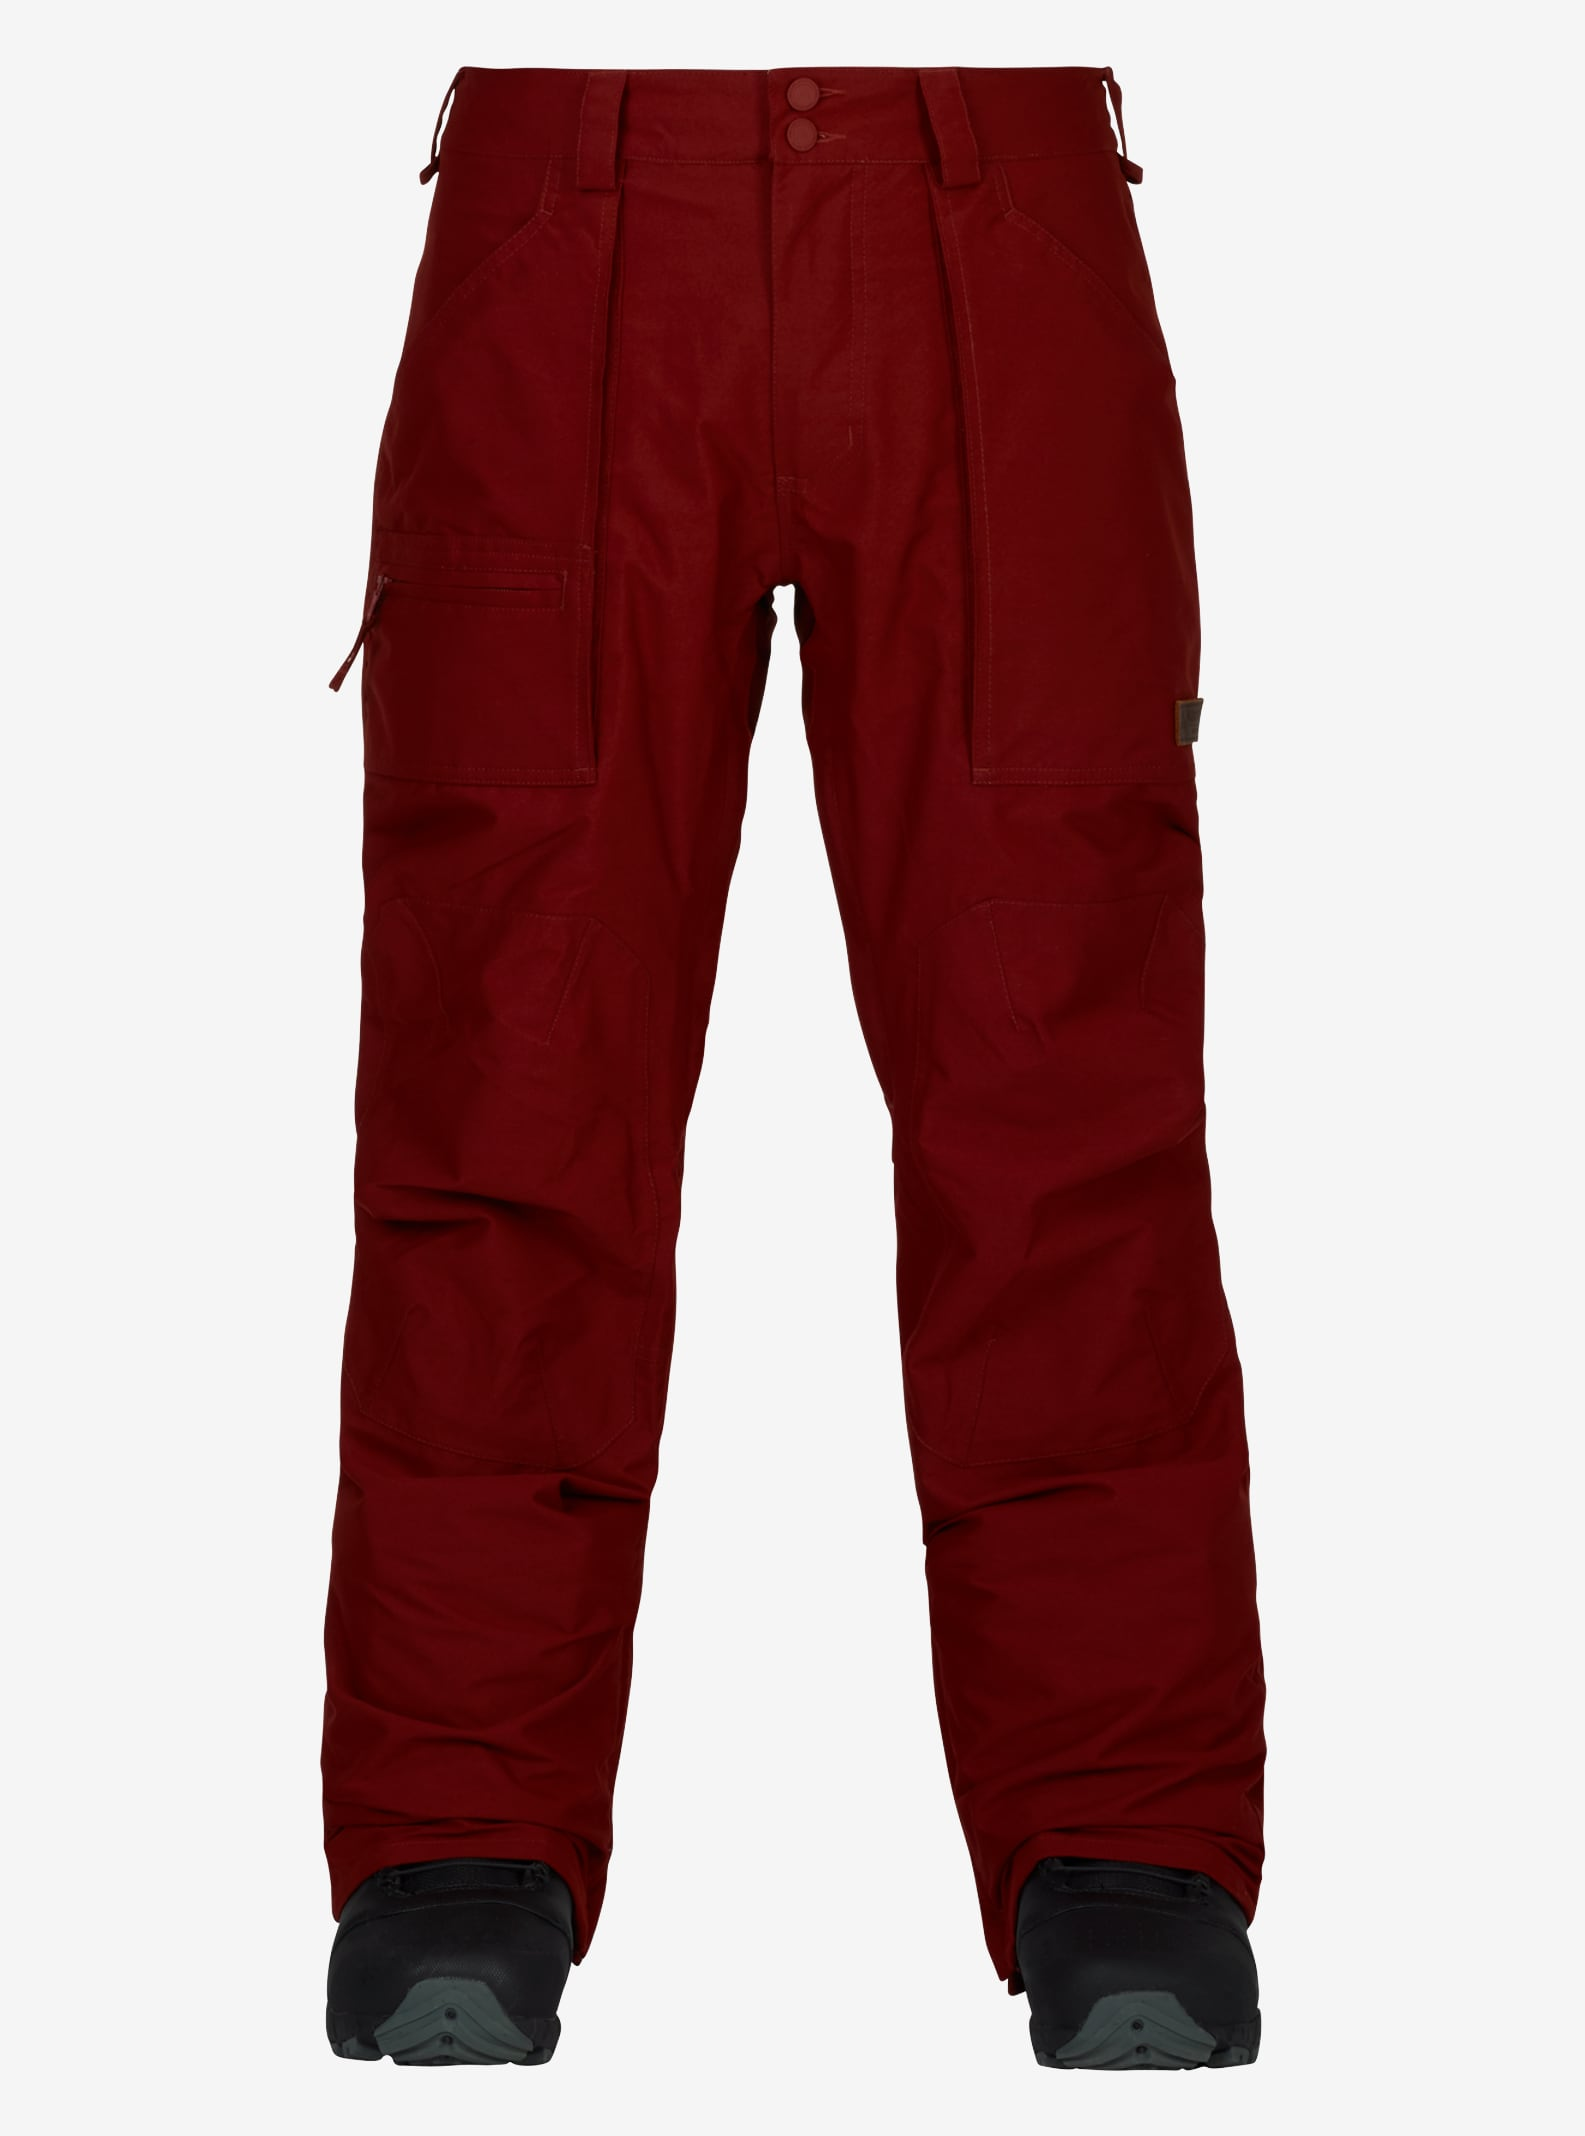 Men's Burton Southside Pant - Regular Fit shown in Fired Brick